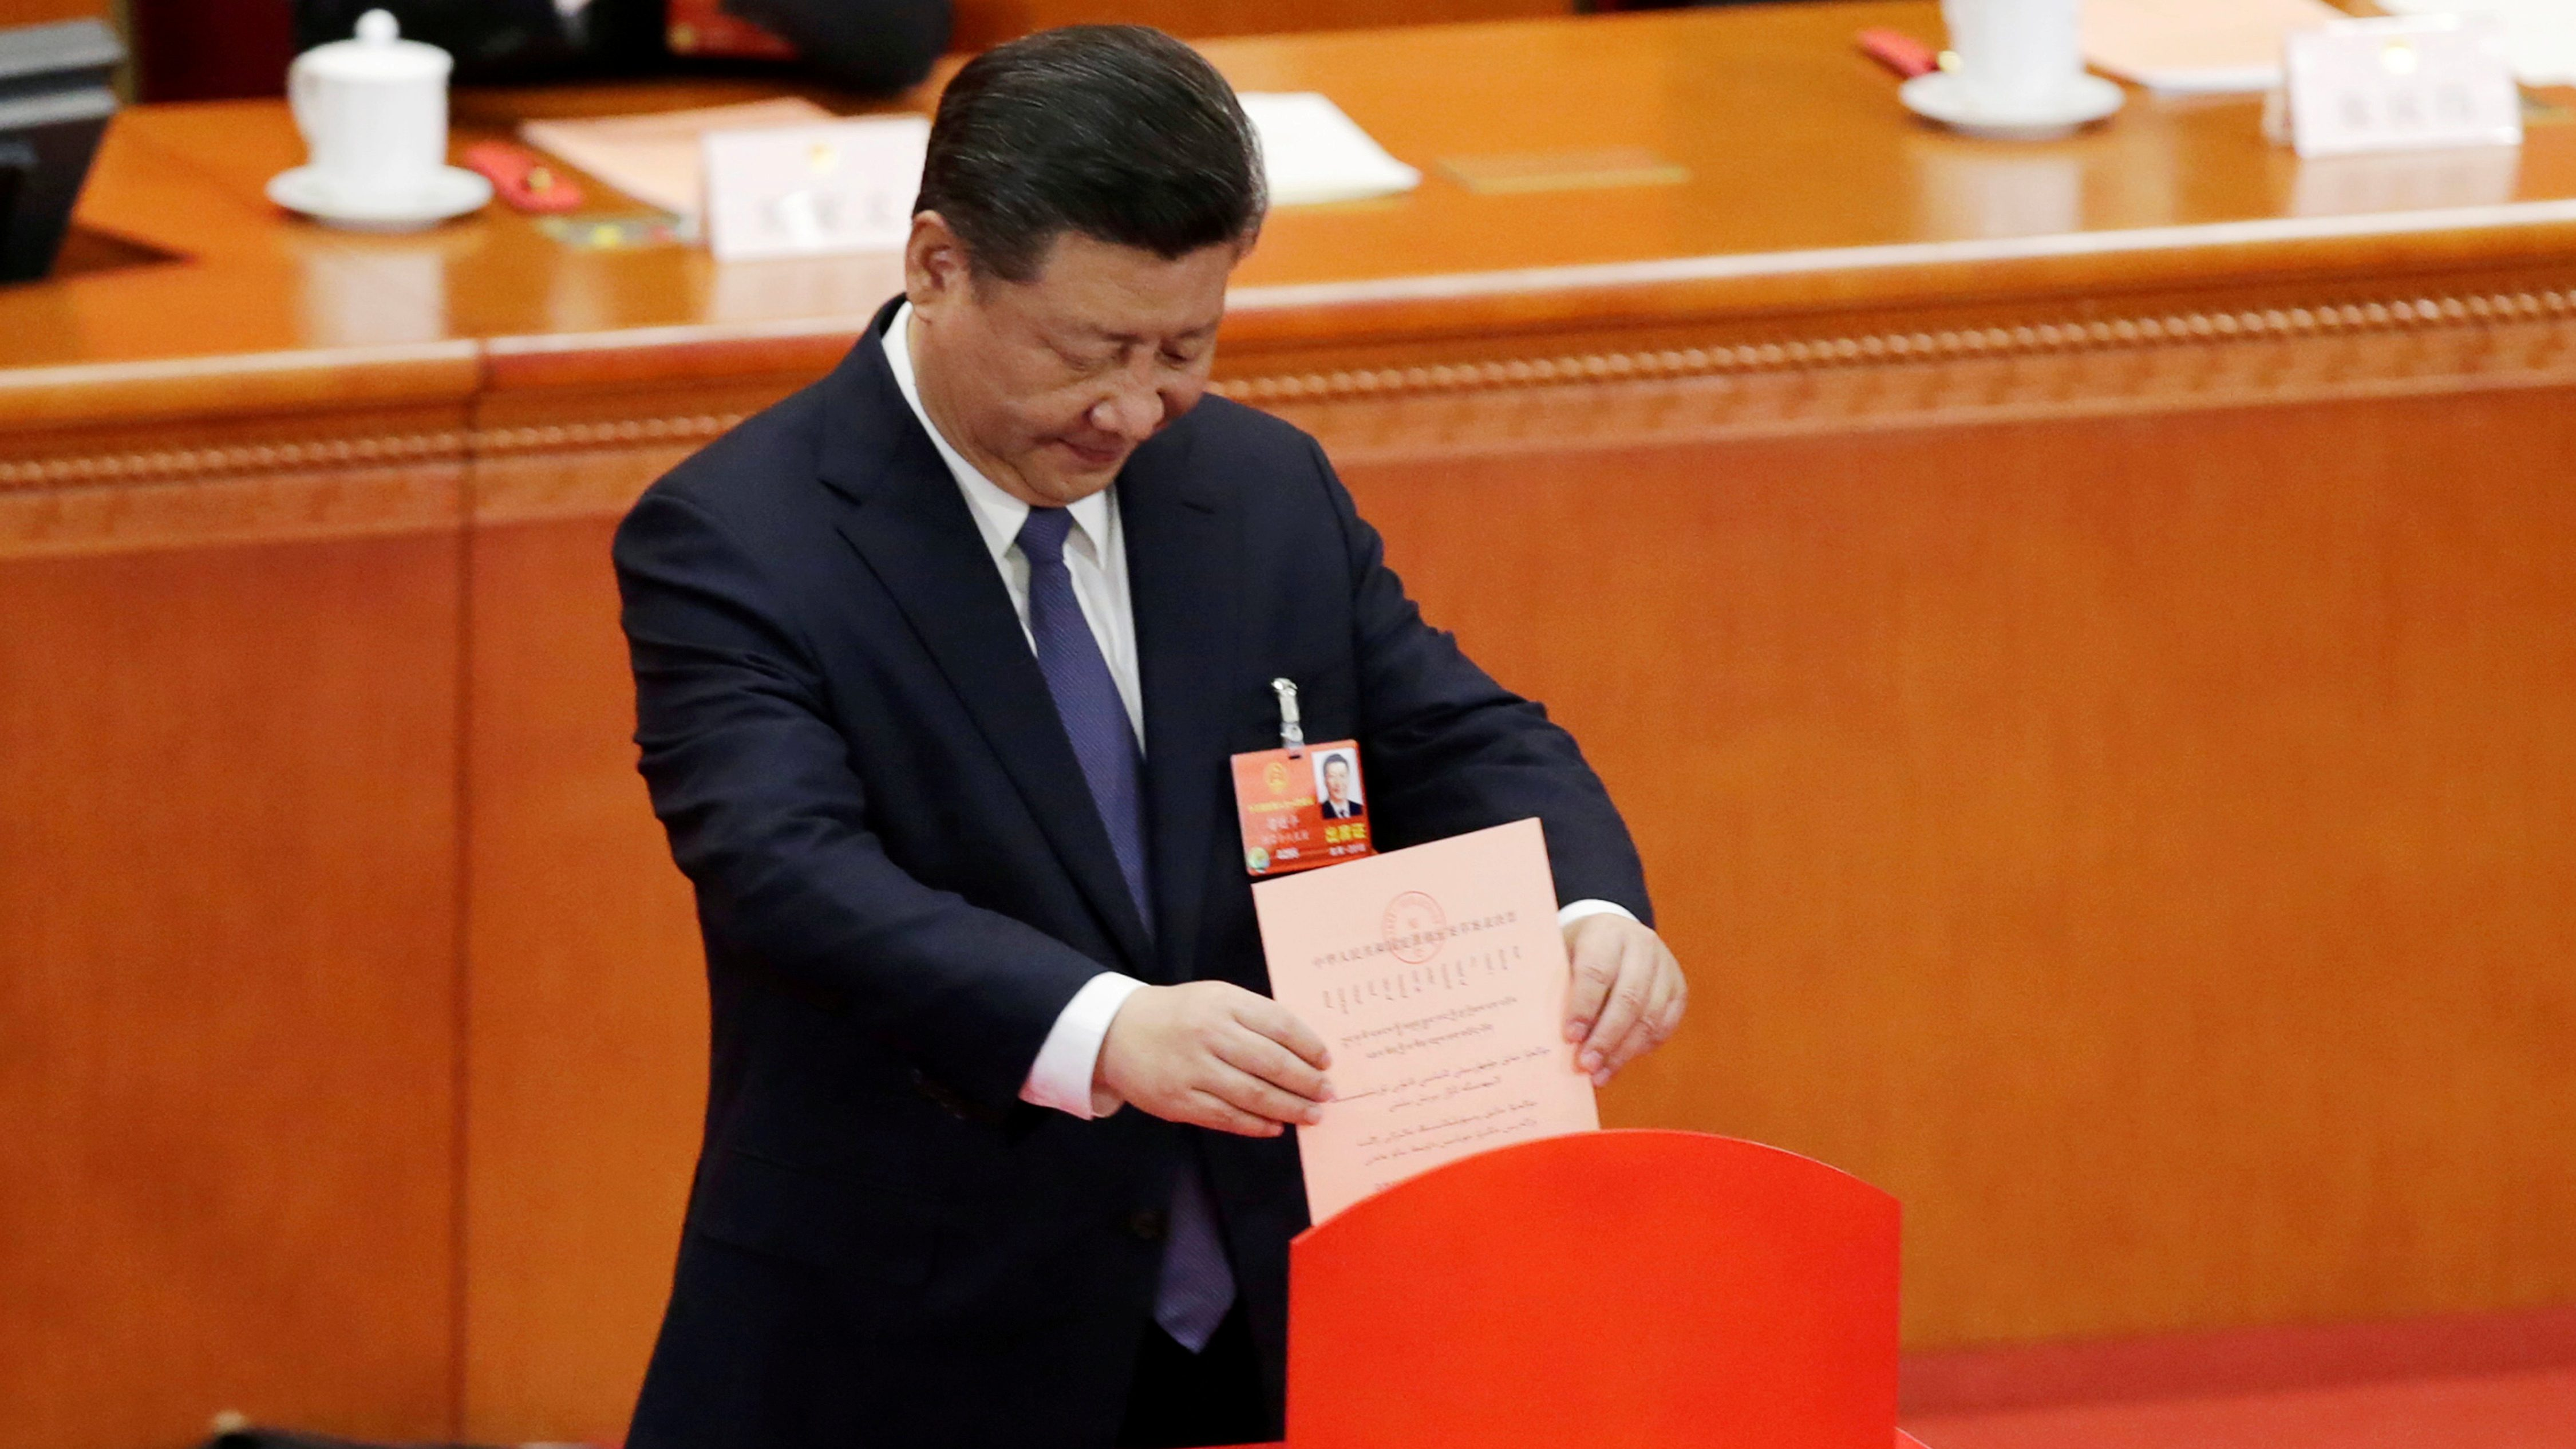 Chinese President Xi Jinping drops his ballot during a vote on a constitutional amendment lifting presidential term limits, at the third plenary session of the National People's Congress (NPC) at the Great Hall of the People in Beijing, China March 11, 2018. To match Analysis CHINA-PARLIAMENT/DISSENT